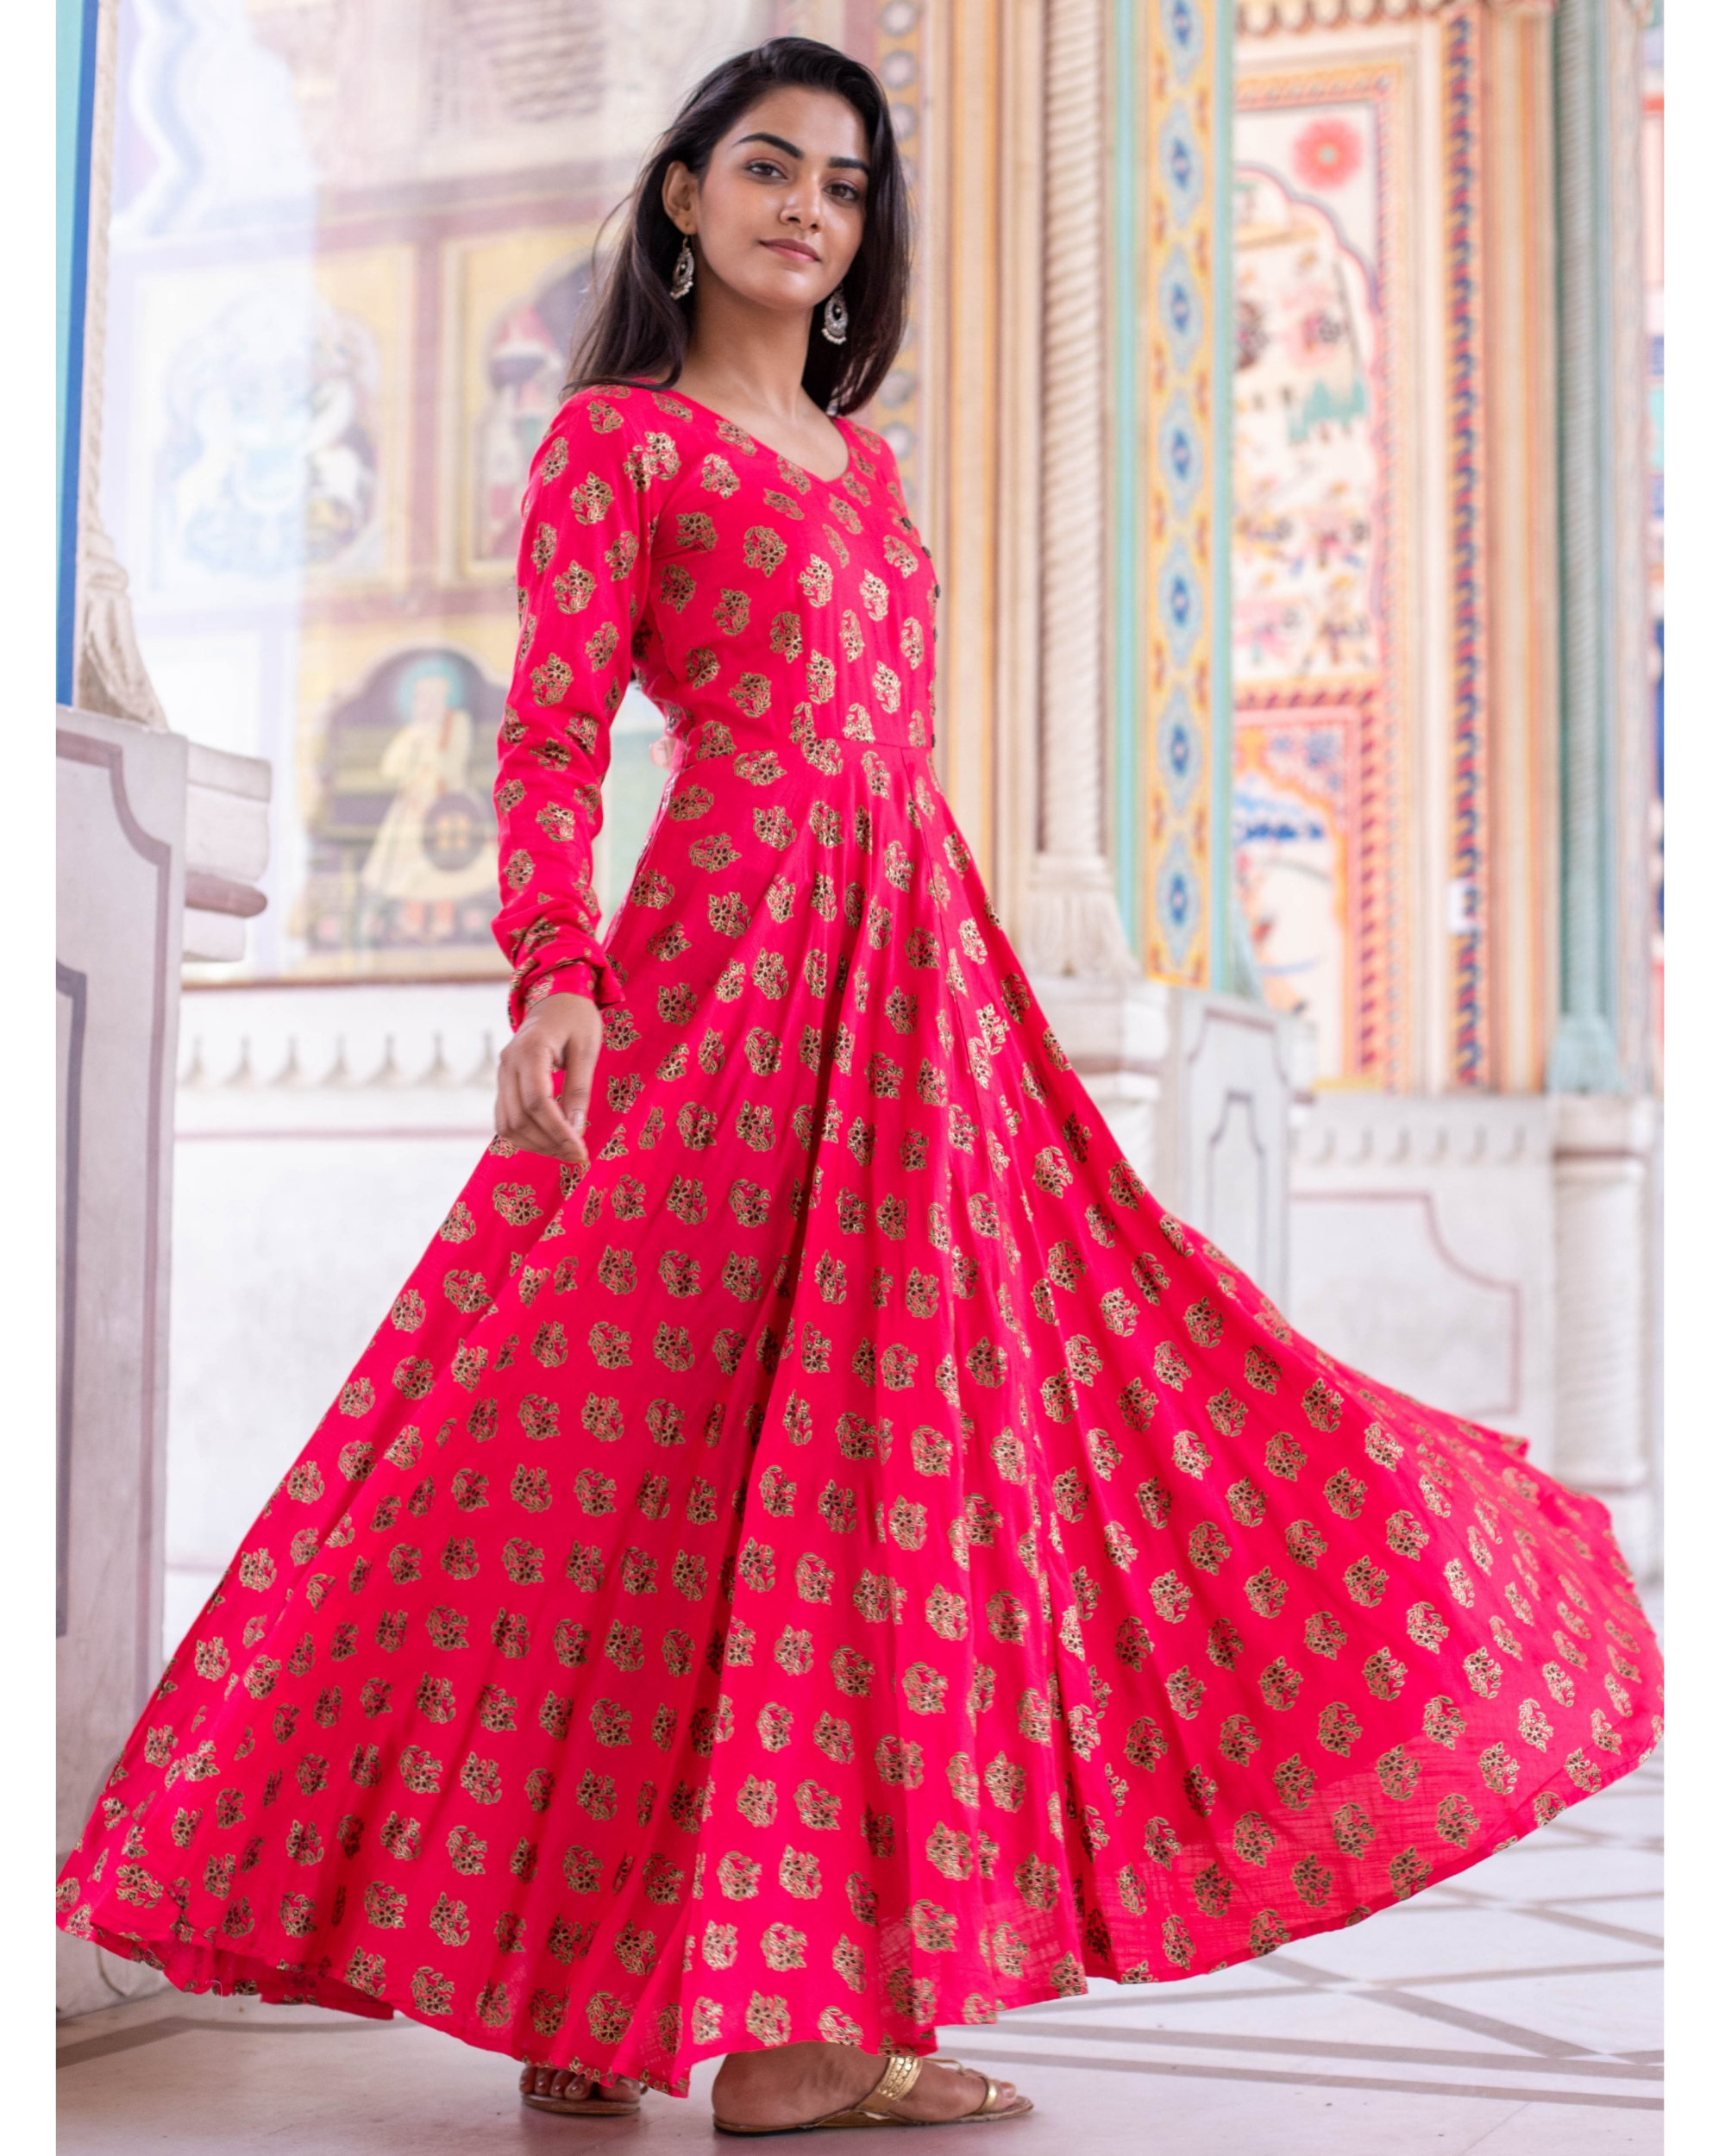 Bright Pink Foil Printed Flared Dress